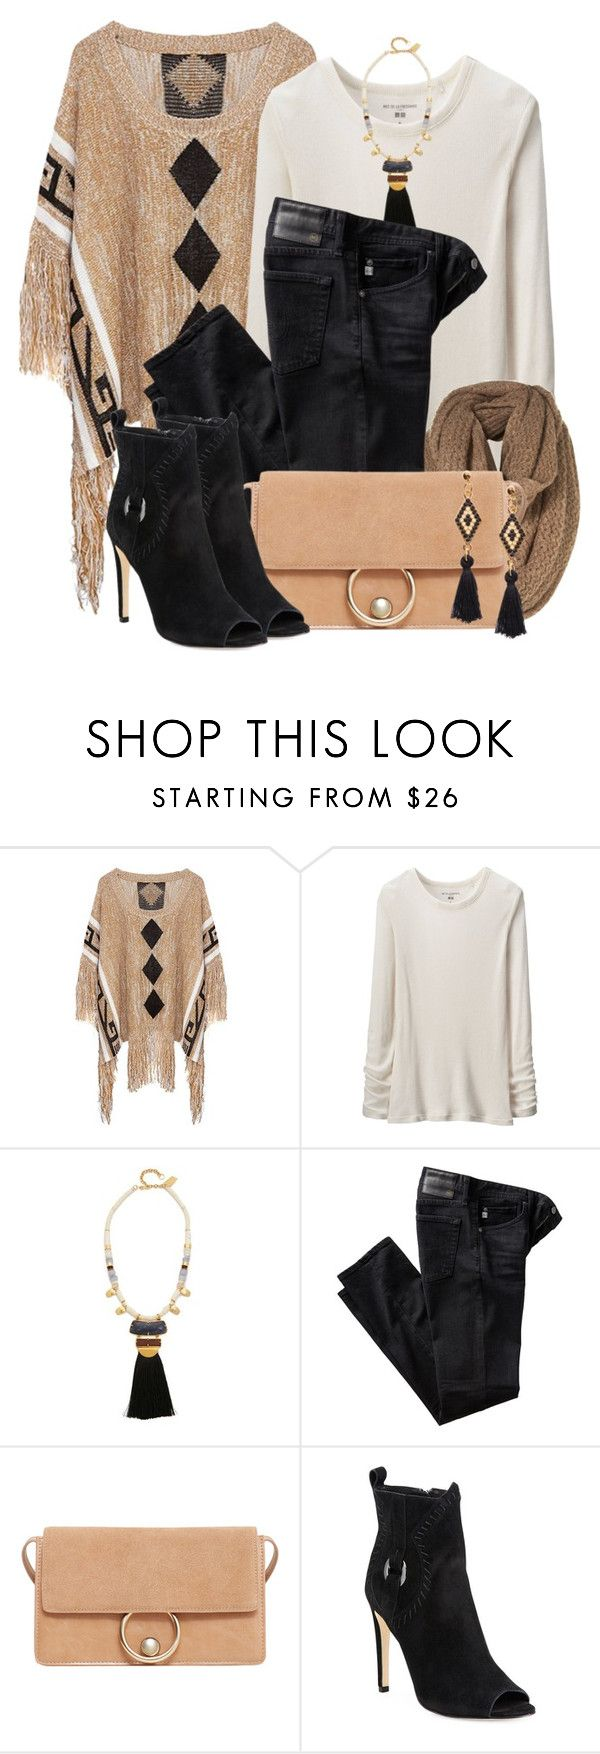 """""""Rebecca Minkoff Suede Peep Toe Ankle Booties"""" by brendariley-1 ❤ liked on Polyvore featuring Uniqlo, Lizzie Fortunato, AG Adriano Goldschmied, MANGO and Rebecca Minkoff"""